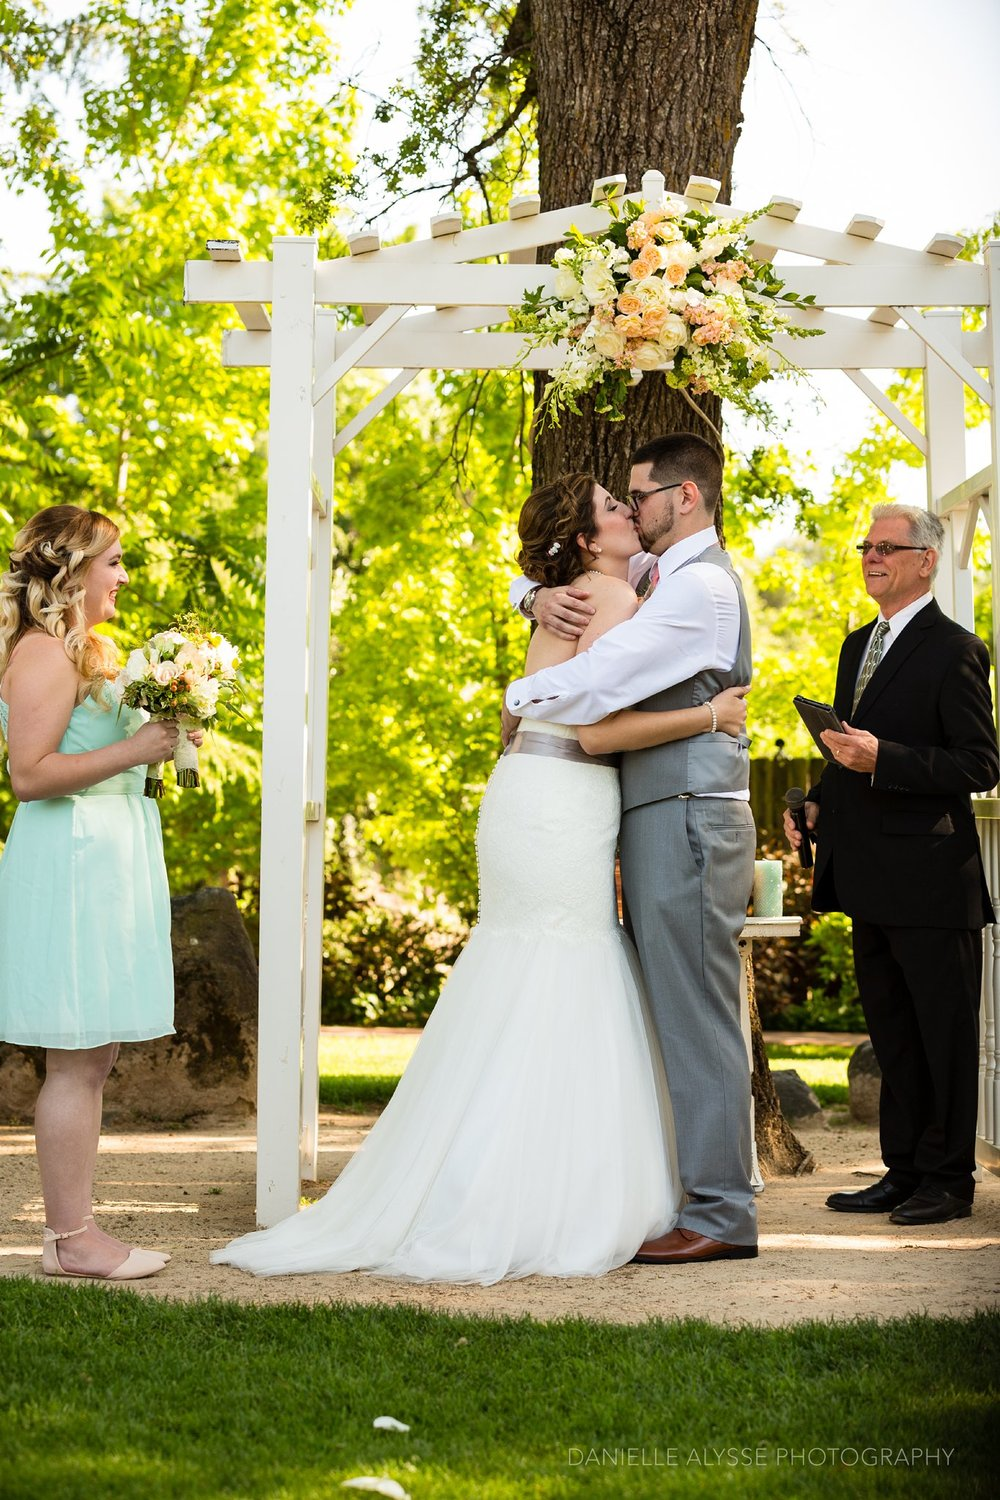 170507_blog_megan_david_wedding_loomis_flower_farm_inn_danielle_alysse_photography_sacramento_photographer0201_WEB.jpg